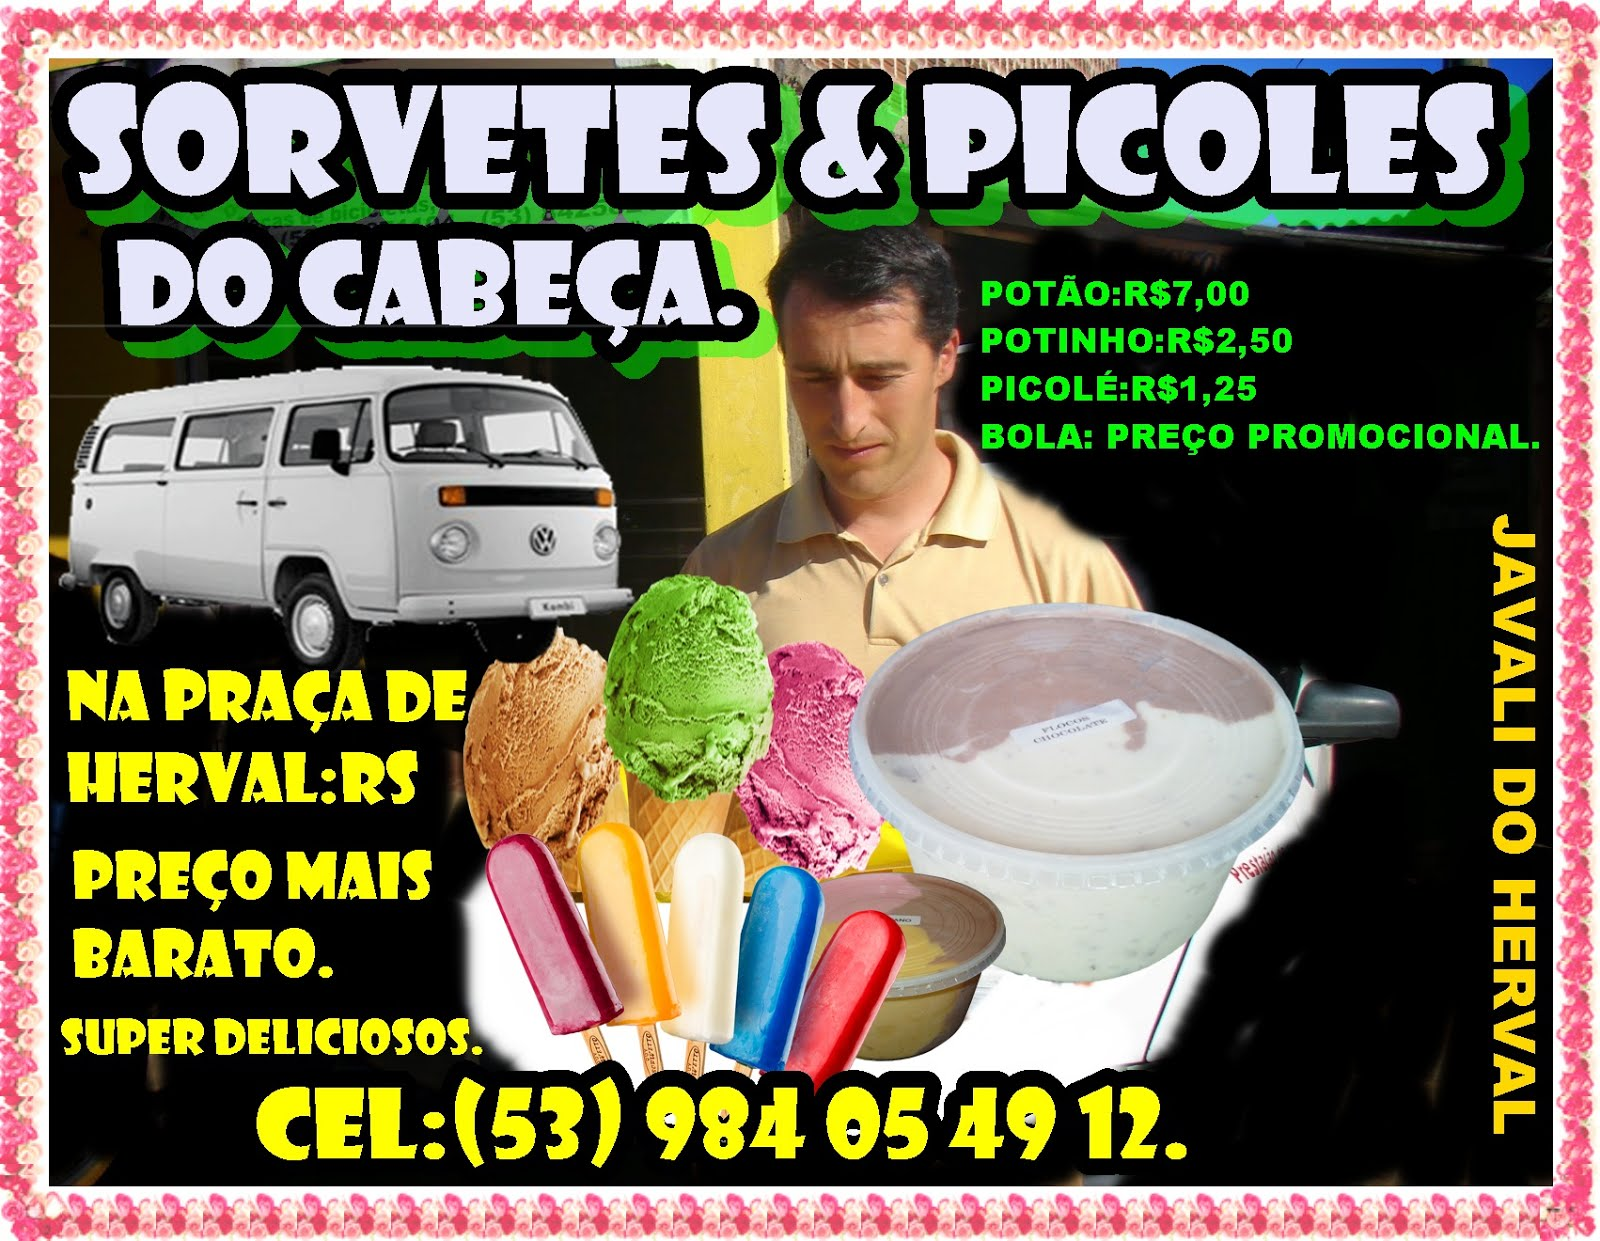 SORVETES & PICOLÉS DO CABEÇA.